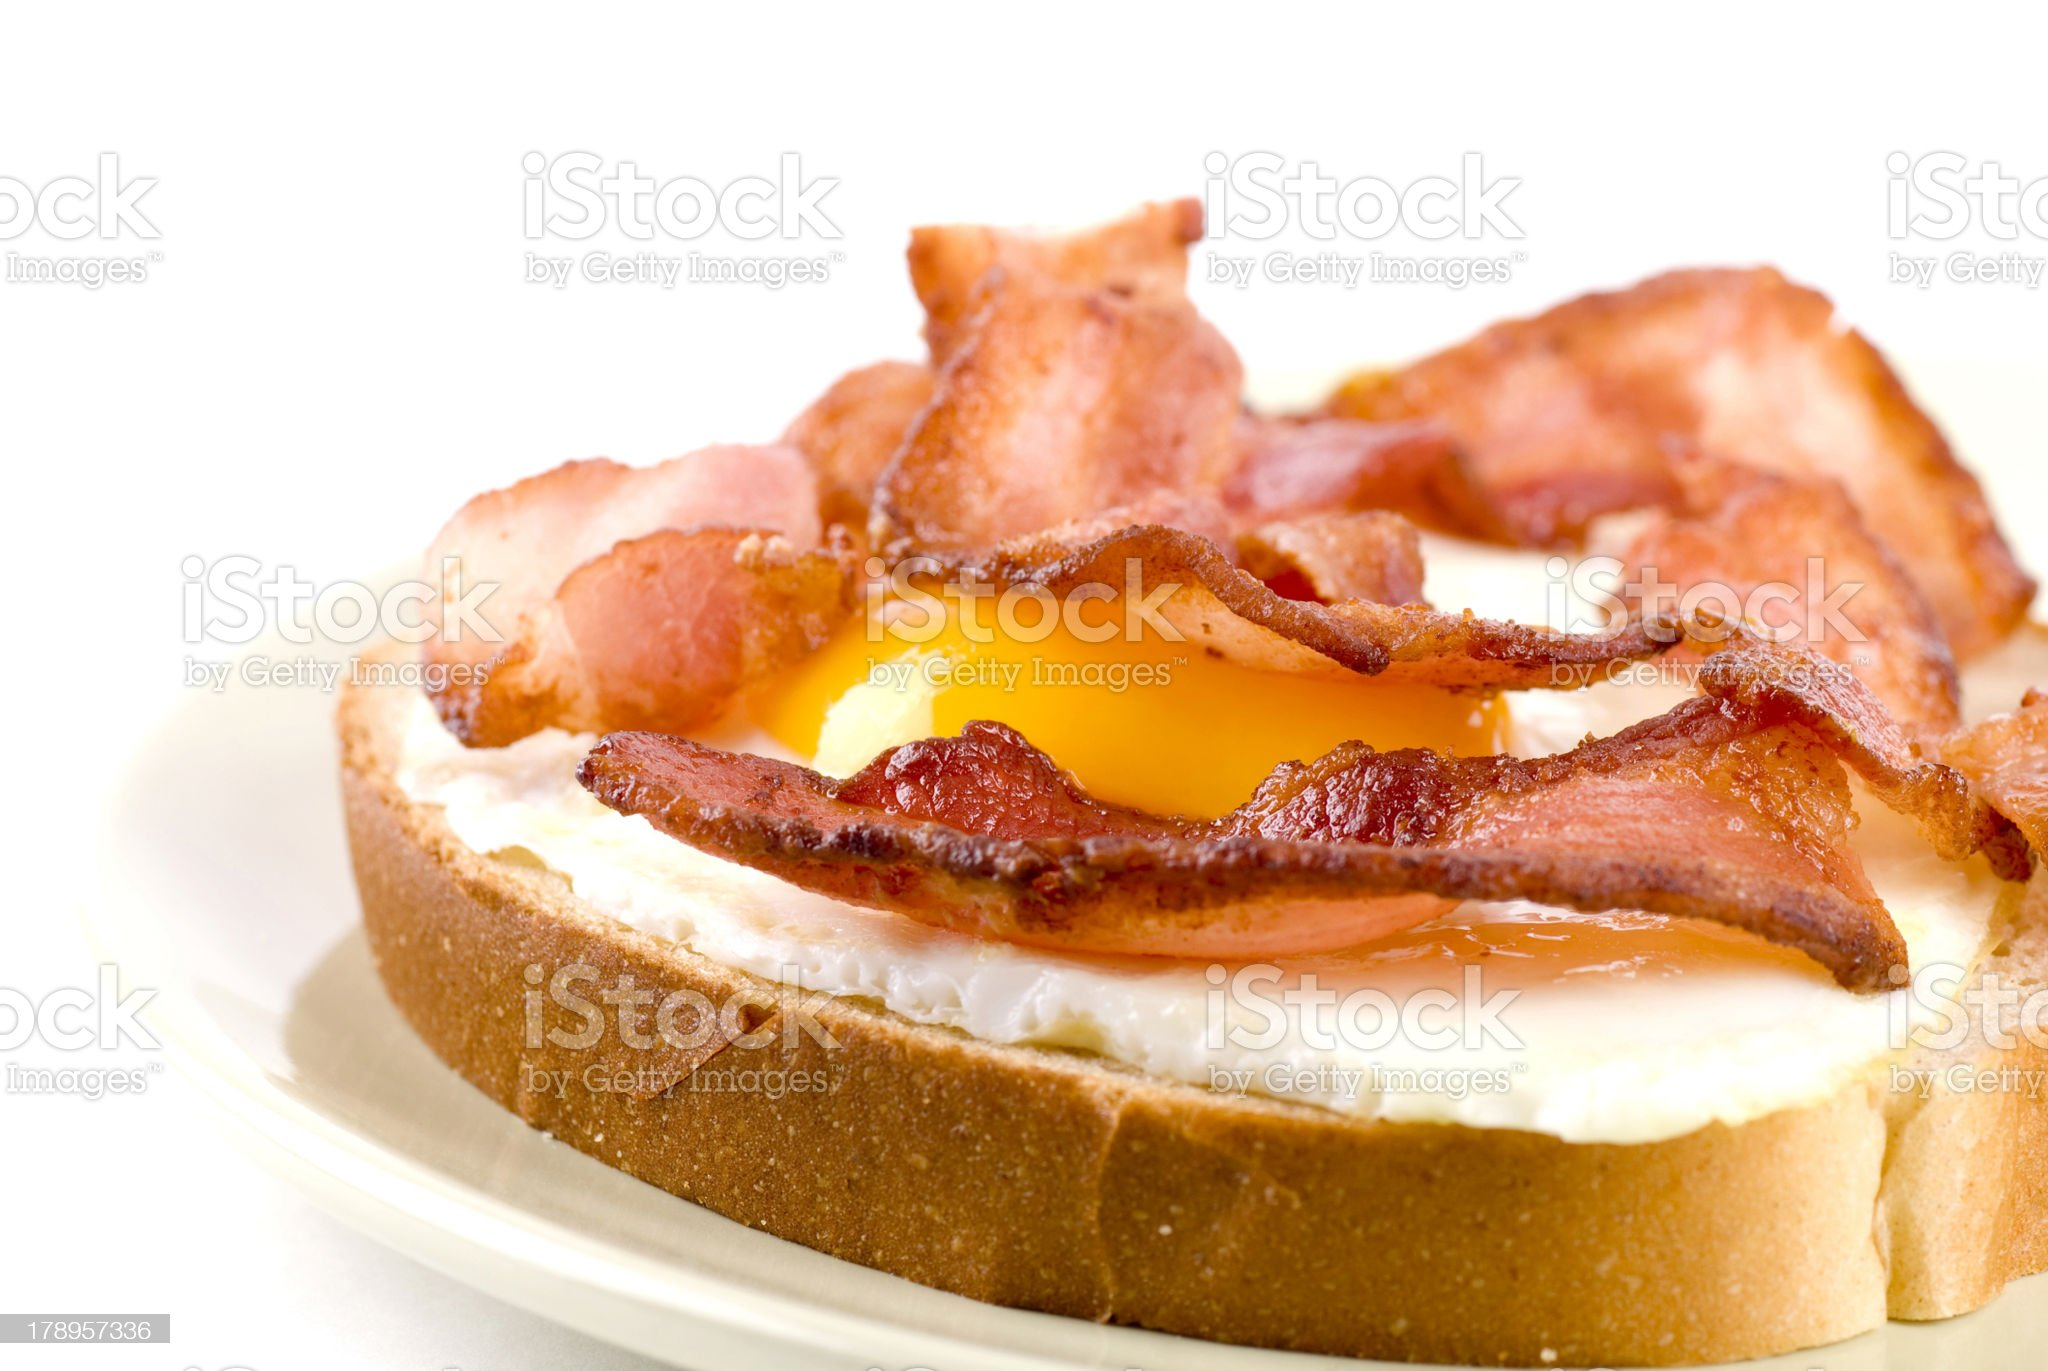 Egg And Bacon Sandwich royalty-free stock photo